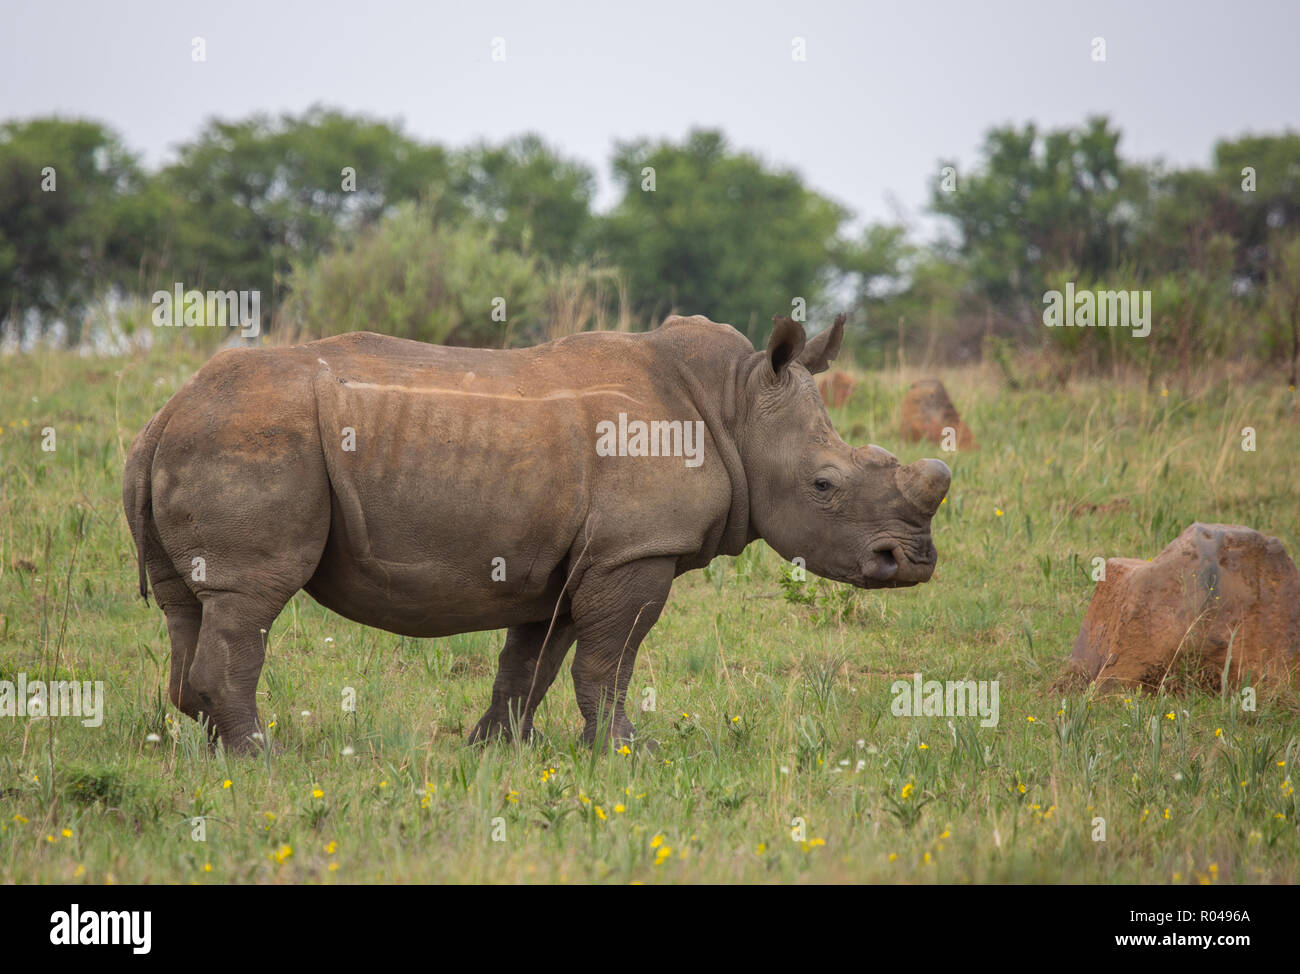 African Rhino wild in nature, on the brink of extinction due to poaching for their horns - Stock Image